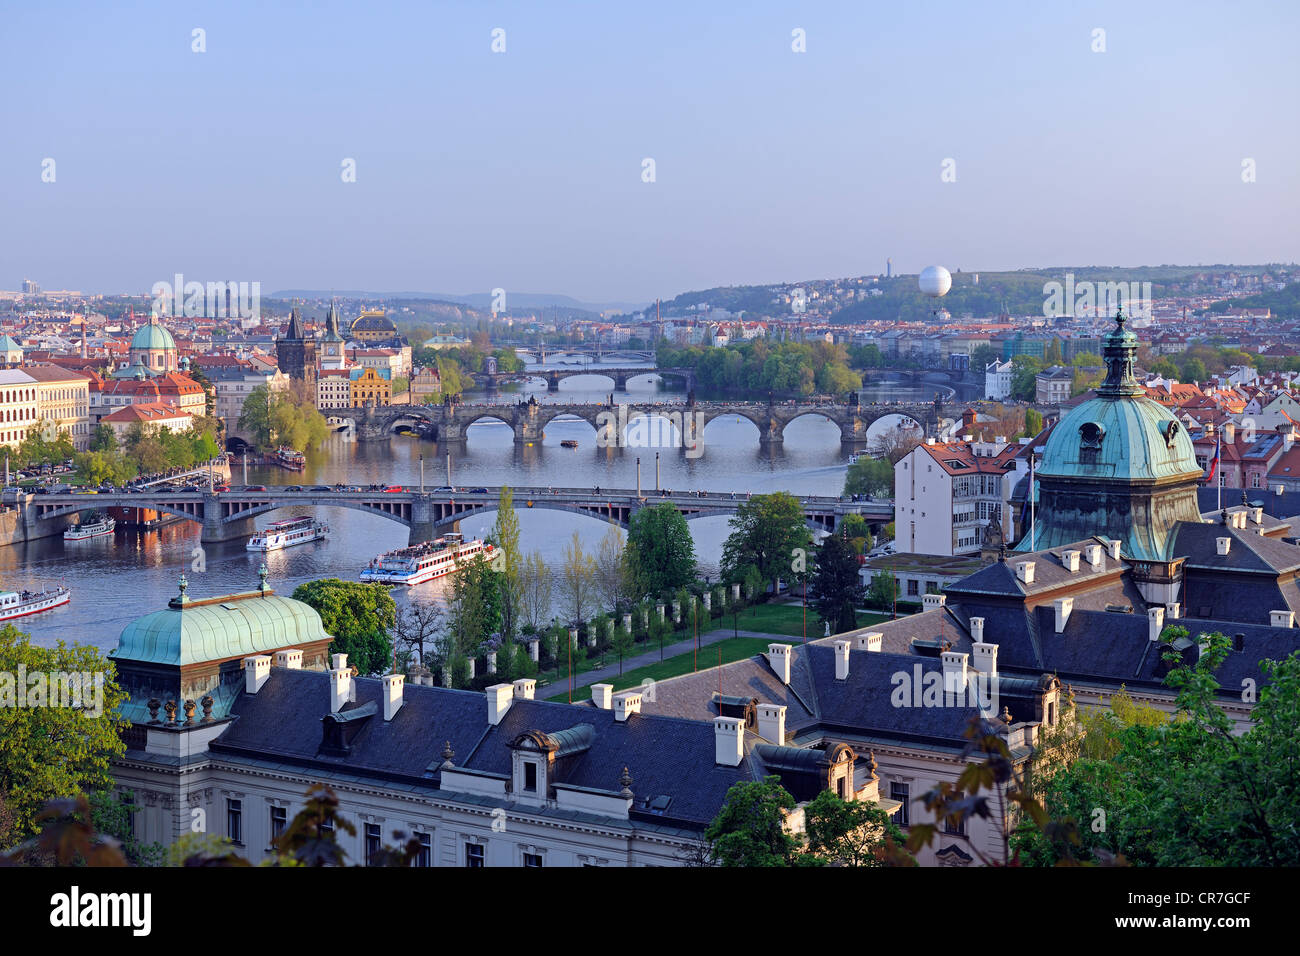 View of the Charles Bridge in the evening, Moldova, historic district of Prague, Bohemia, Czech Republic, Europe - Stock Image